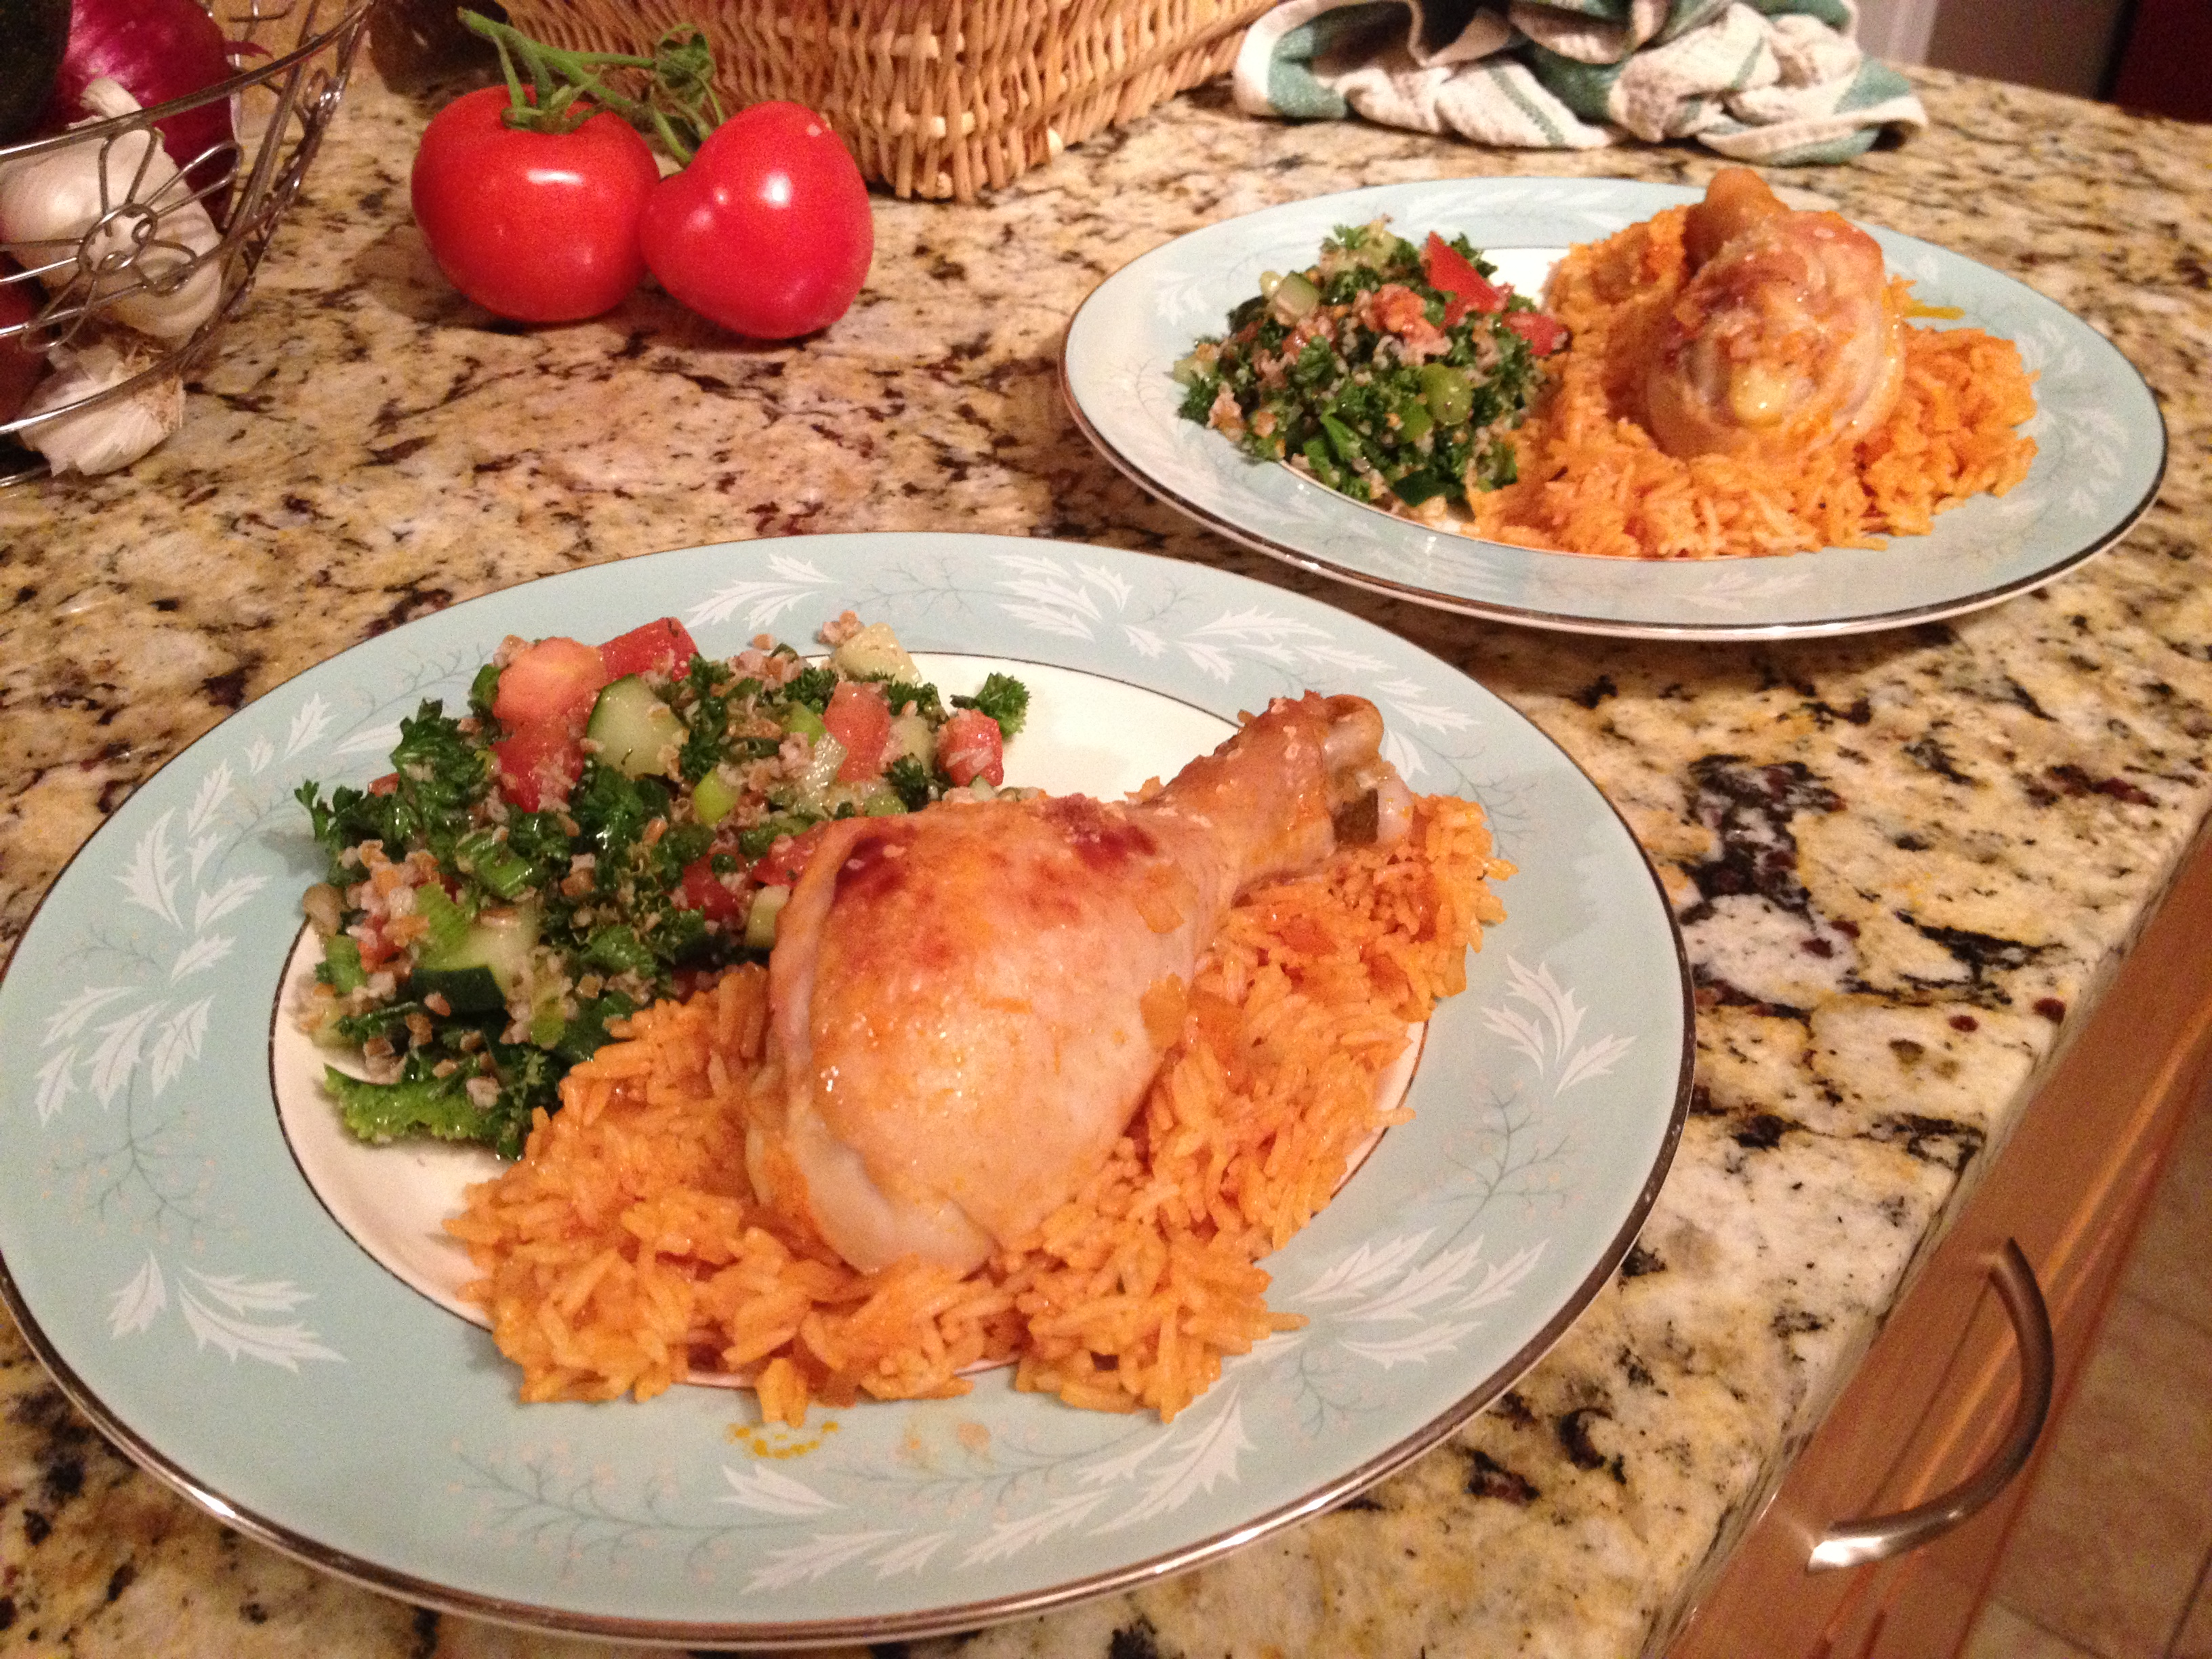 Kabsa, plated